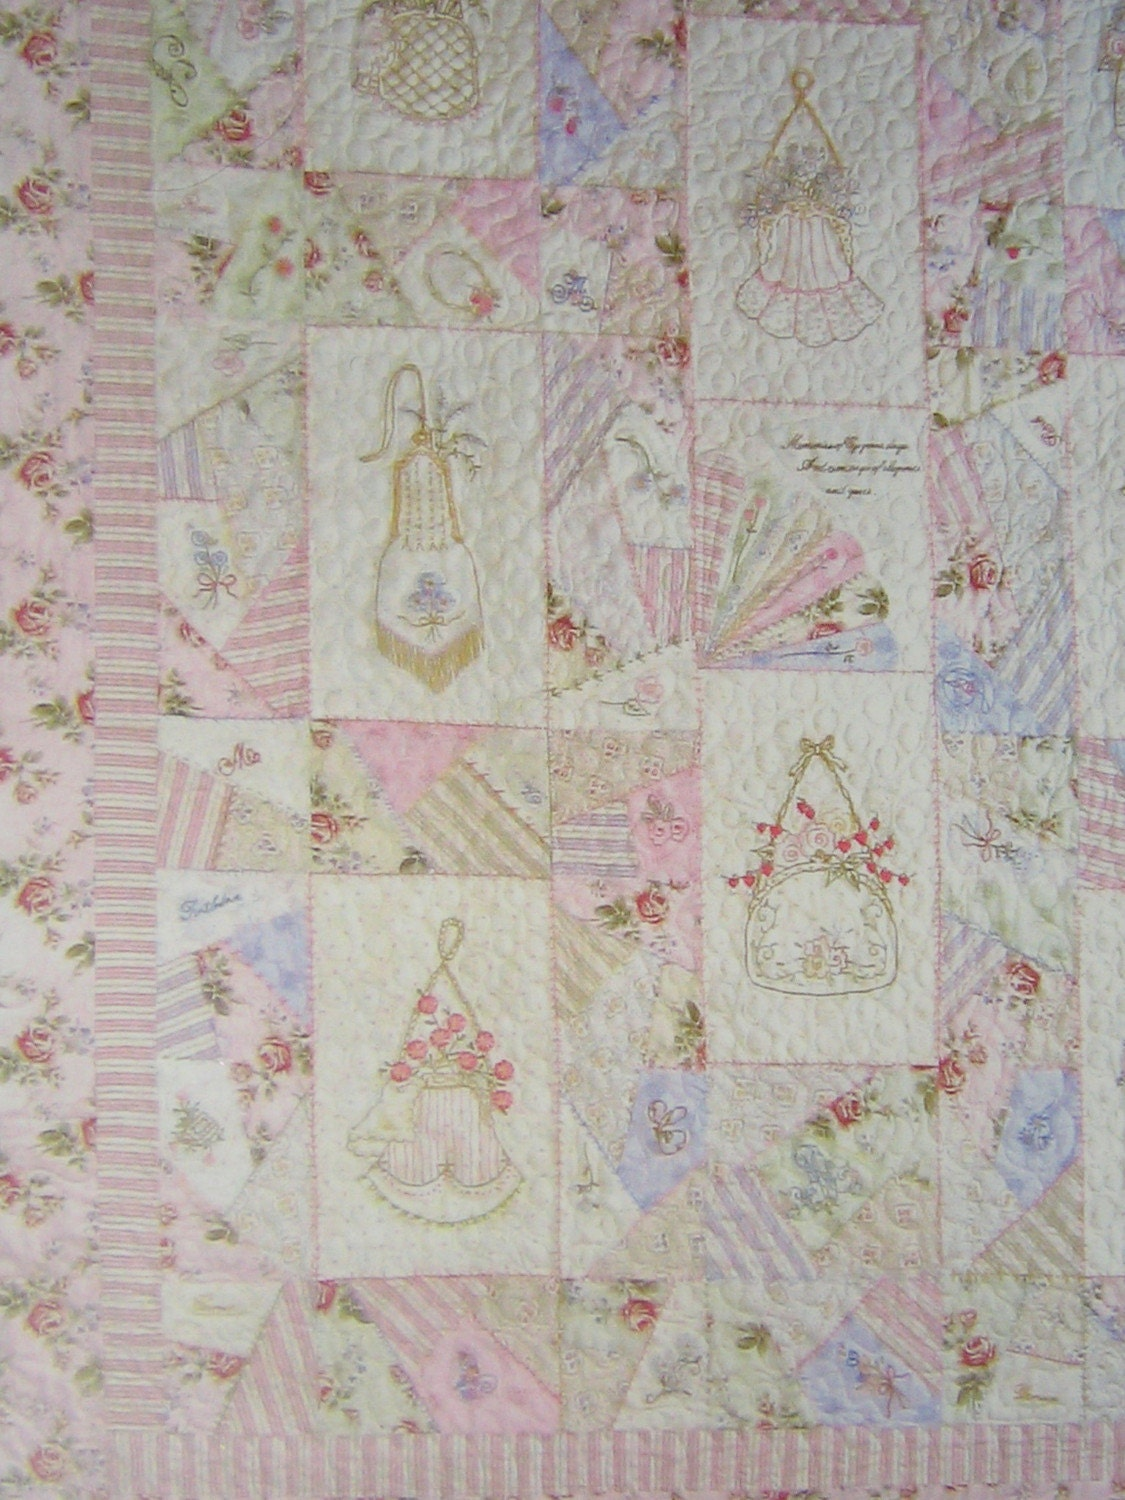 Crabapple hill quilt pattern hand embroidery heirloom